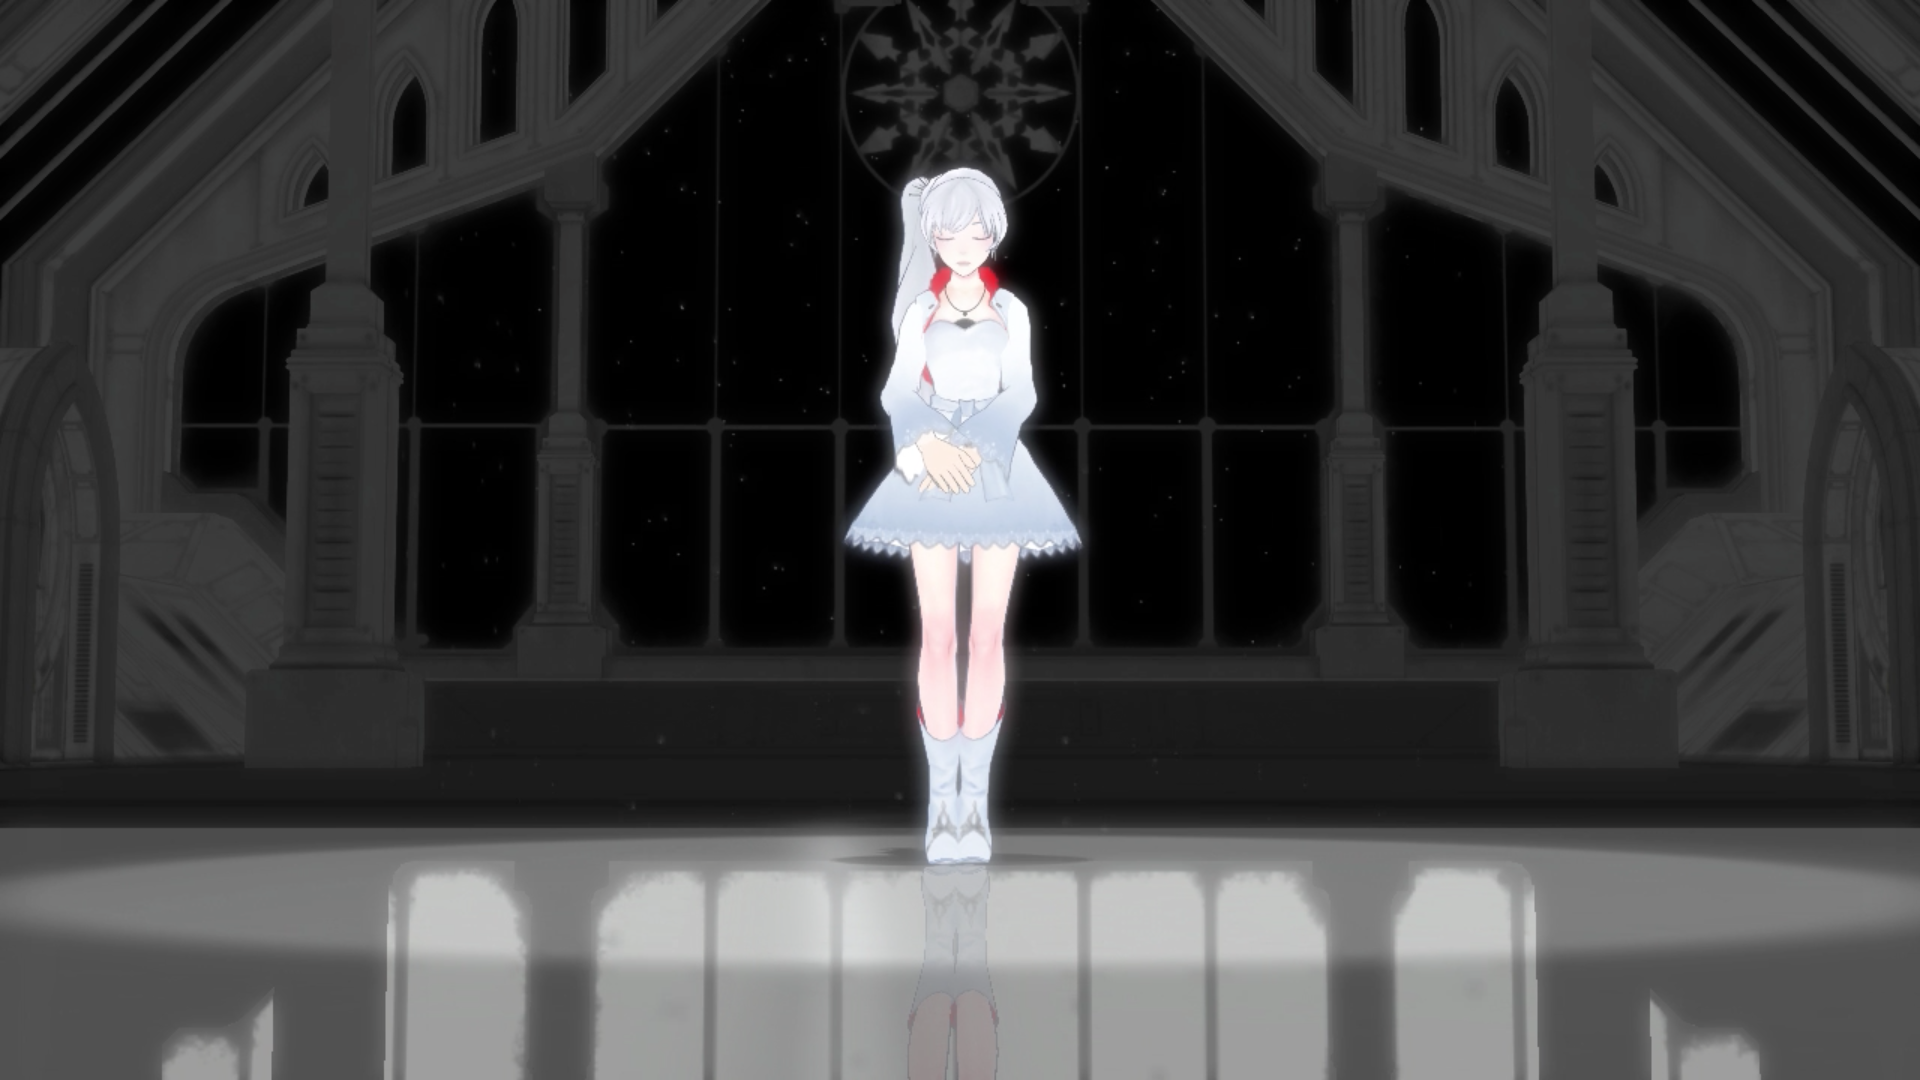 What is your favorite song from RWBY? - RWBY - Fanpop